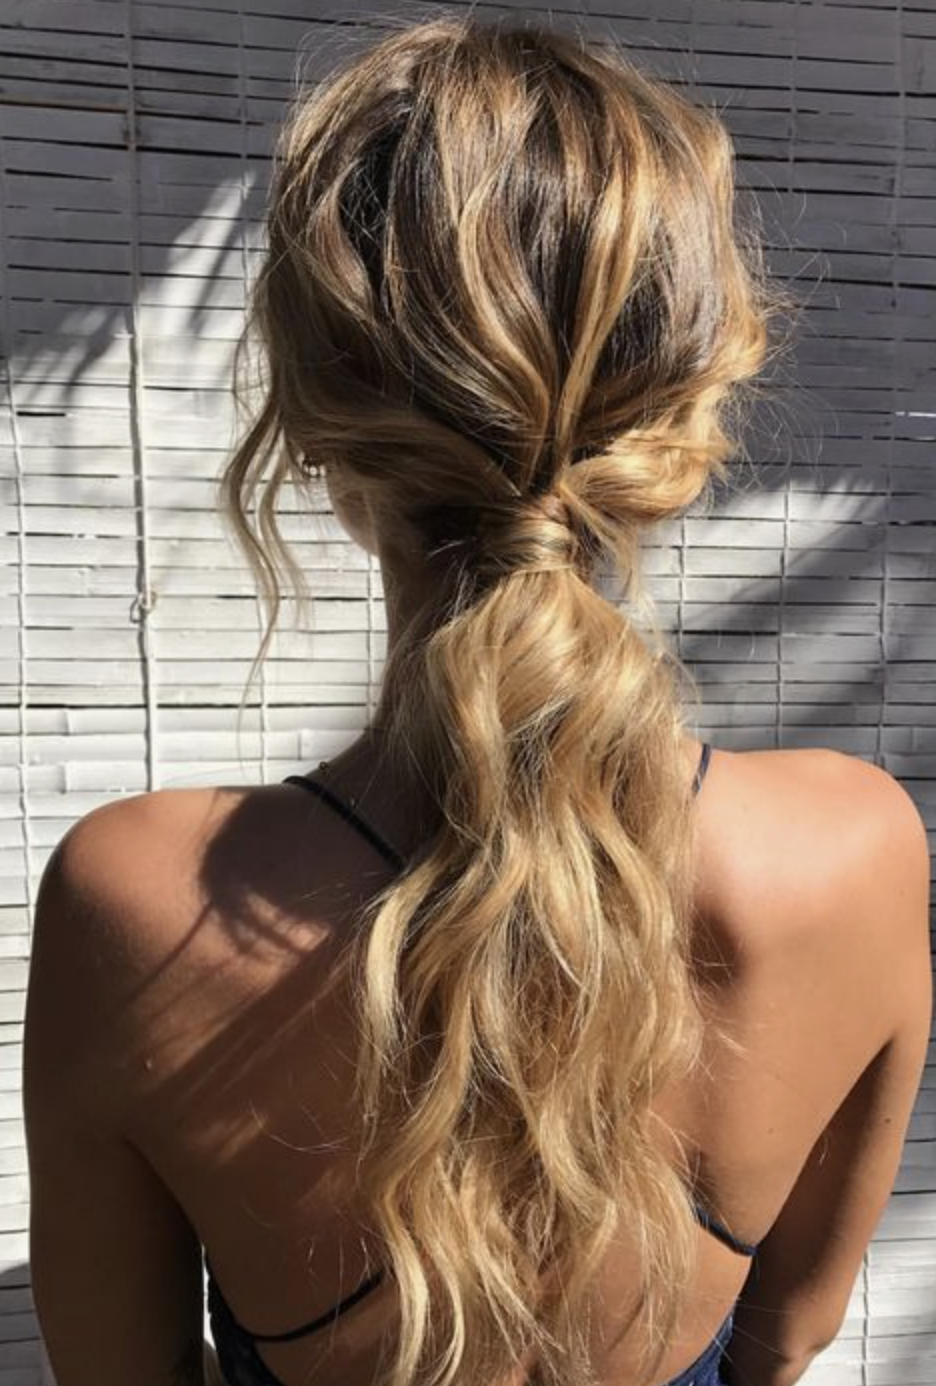 pinterest: •casey•/ super cute twisted messy pony hairstyle/ follow